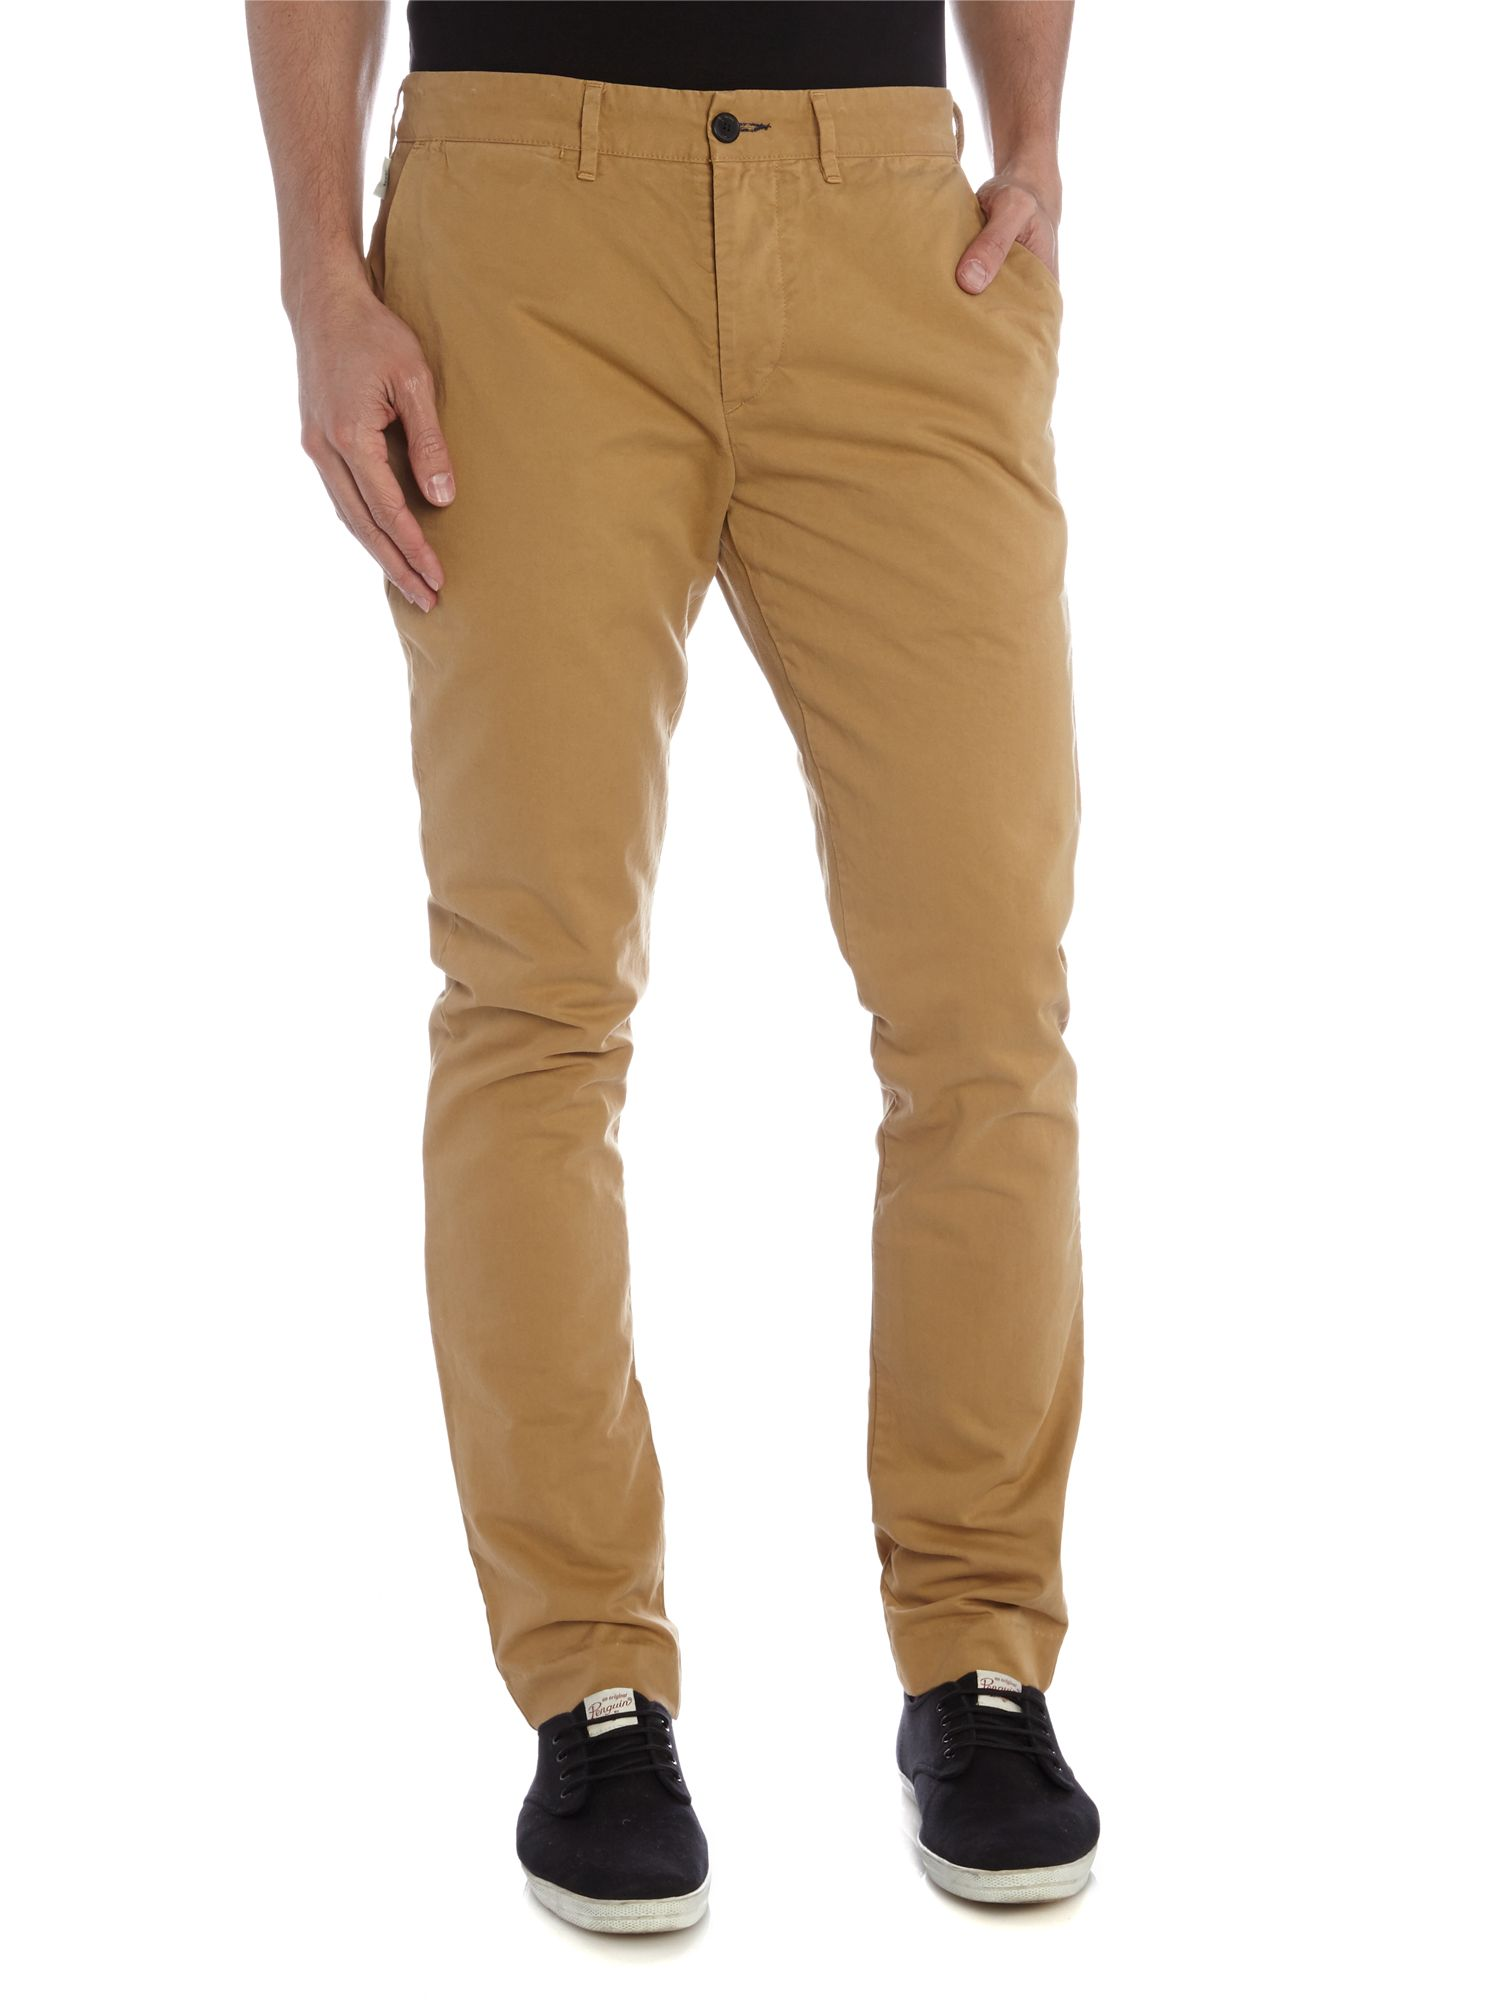 Five pocket chino